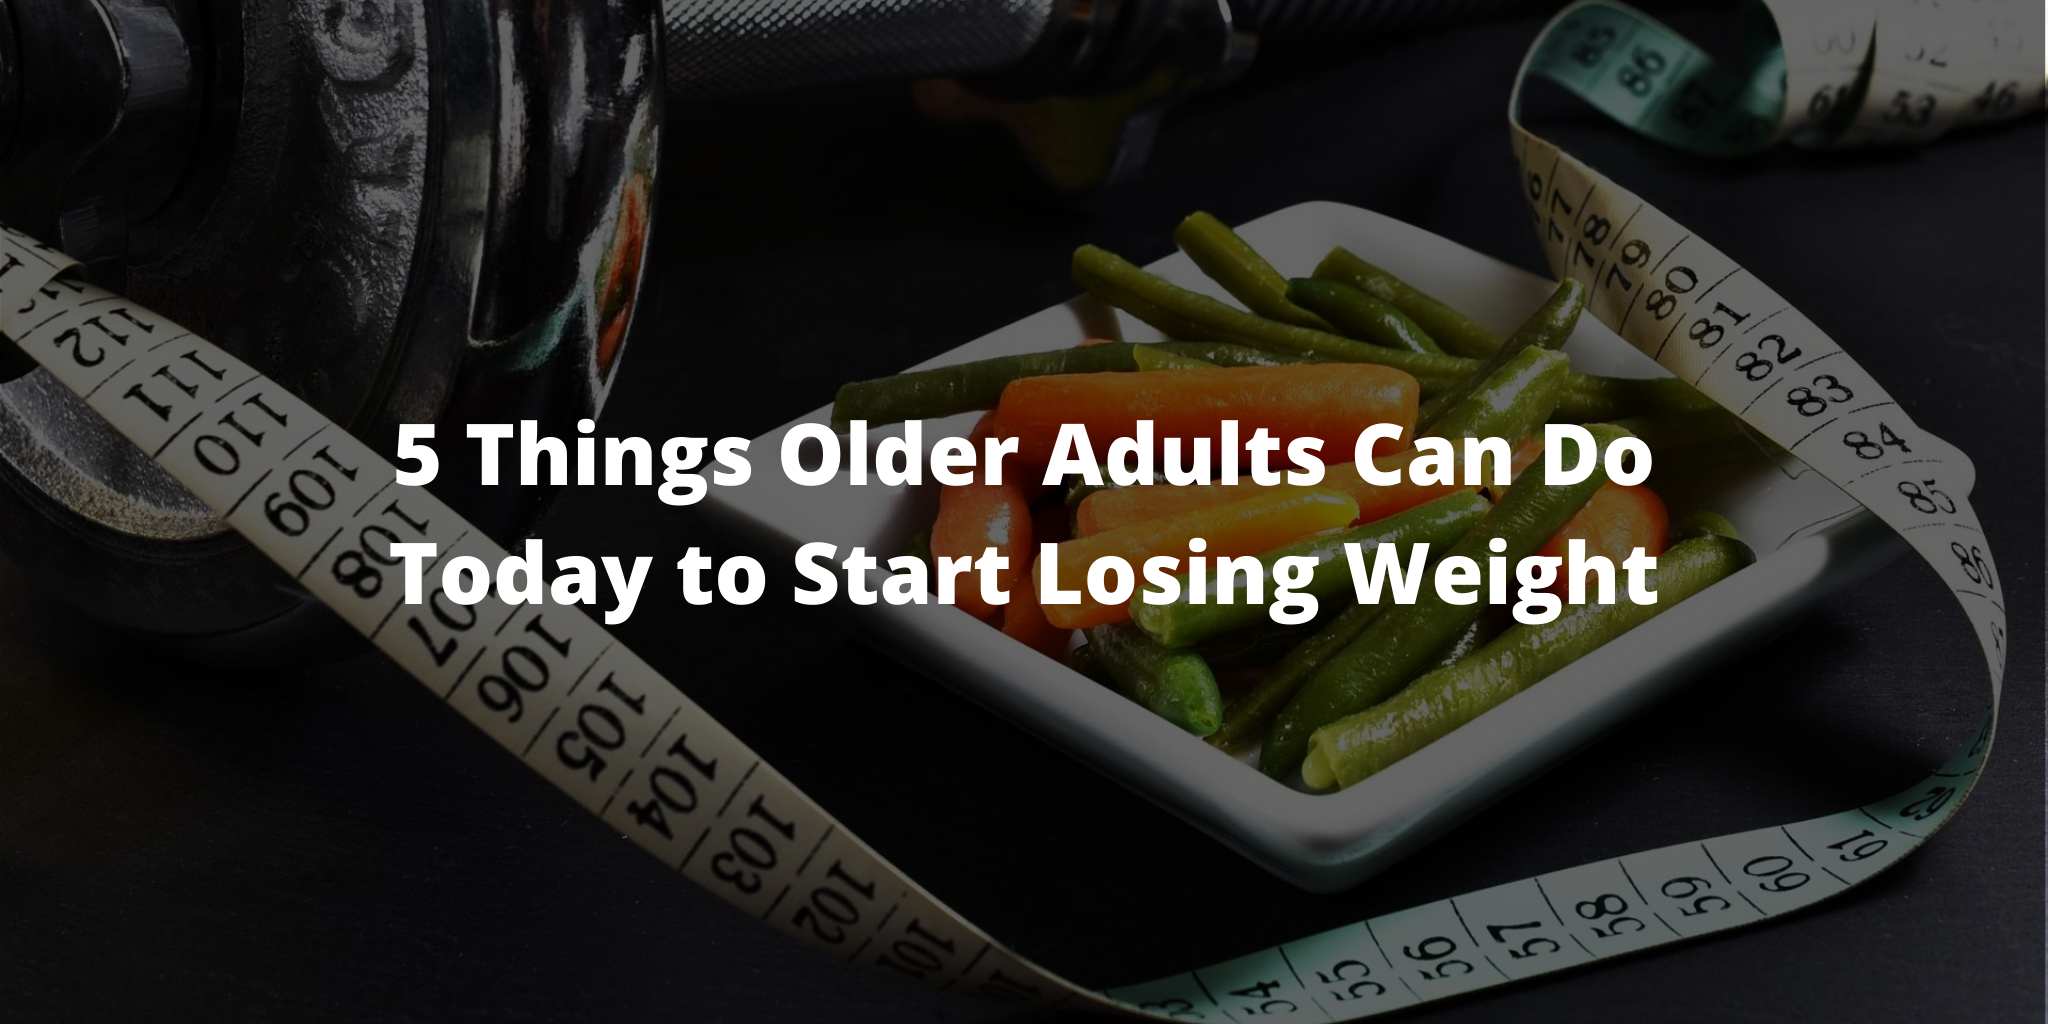 5 Things Older Adults Can Do Today to Start Losing Weight